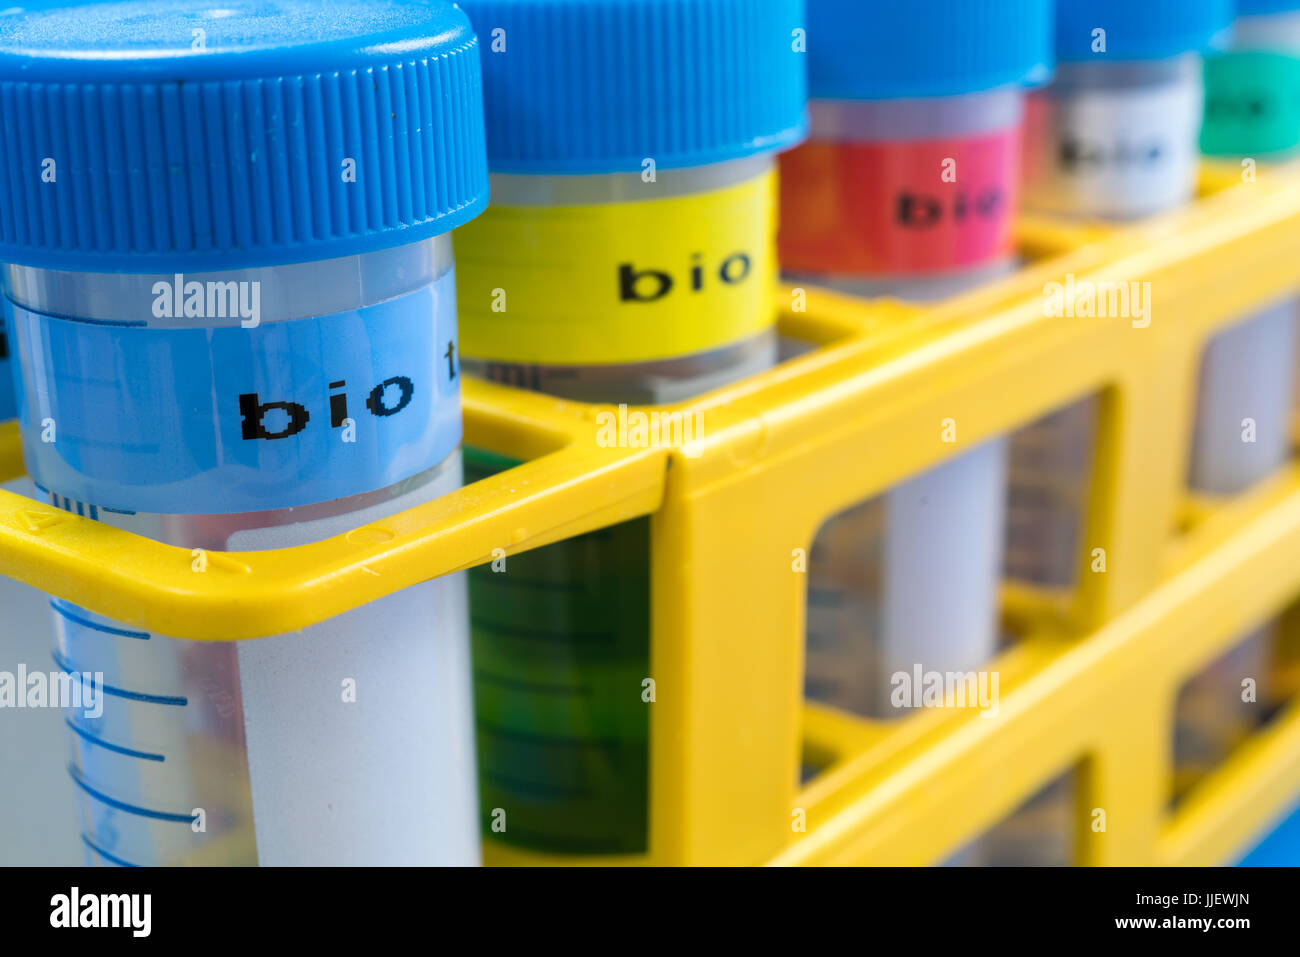 centrifuge test tubes with bio samples for microbial testing - Stock Image